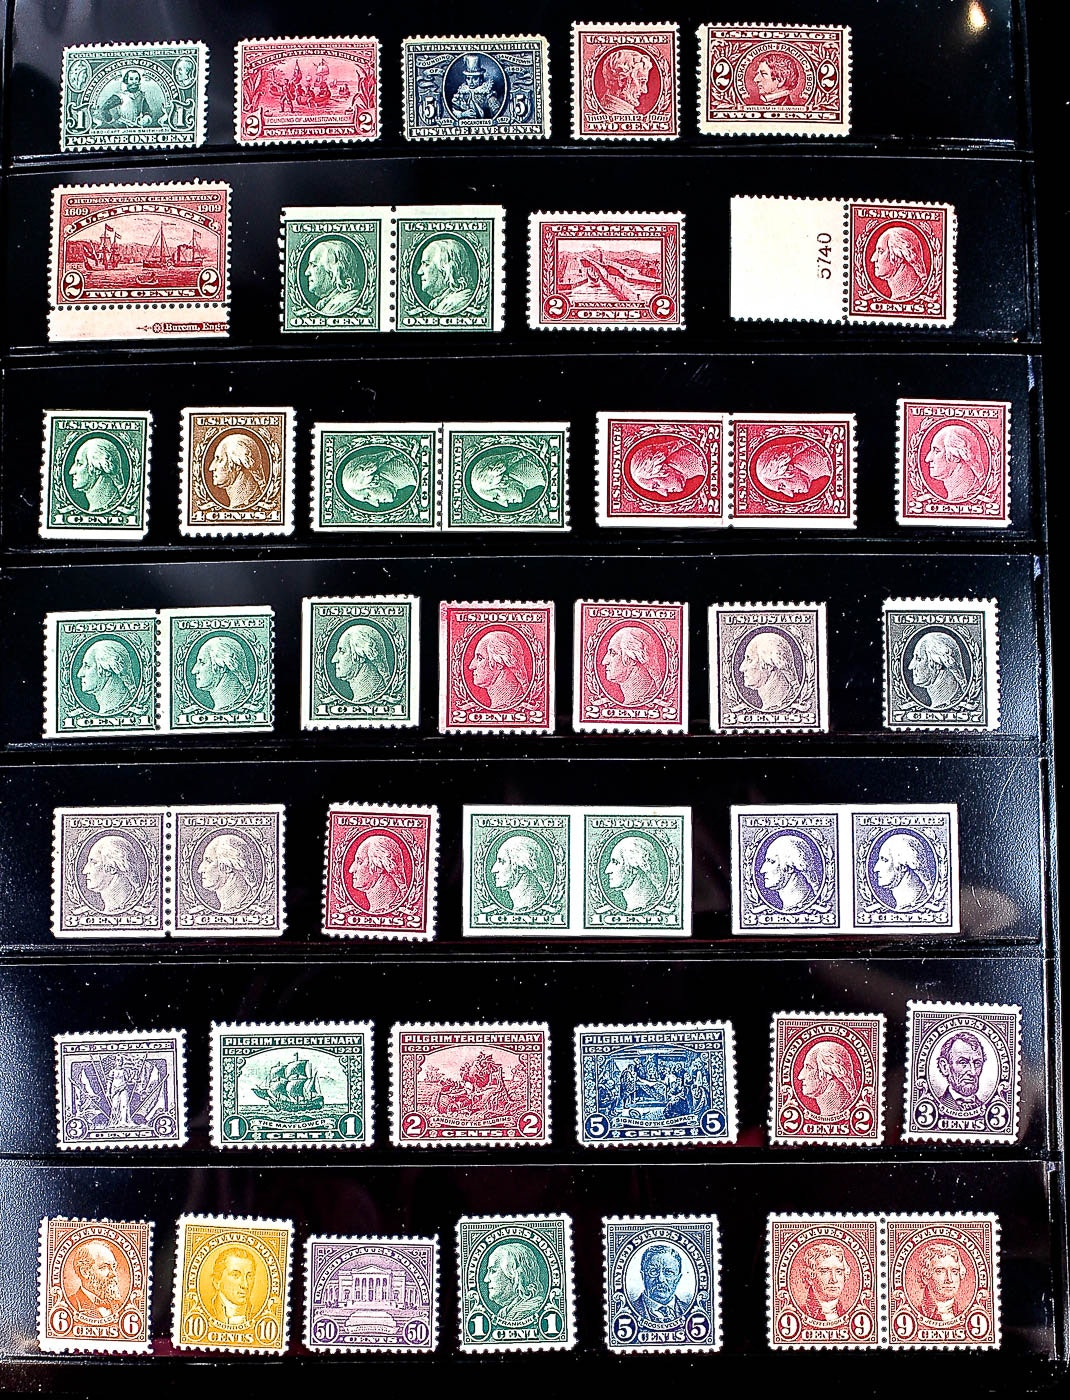 U.S. Stamp Collection Including 87 Various Stamps